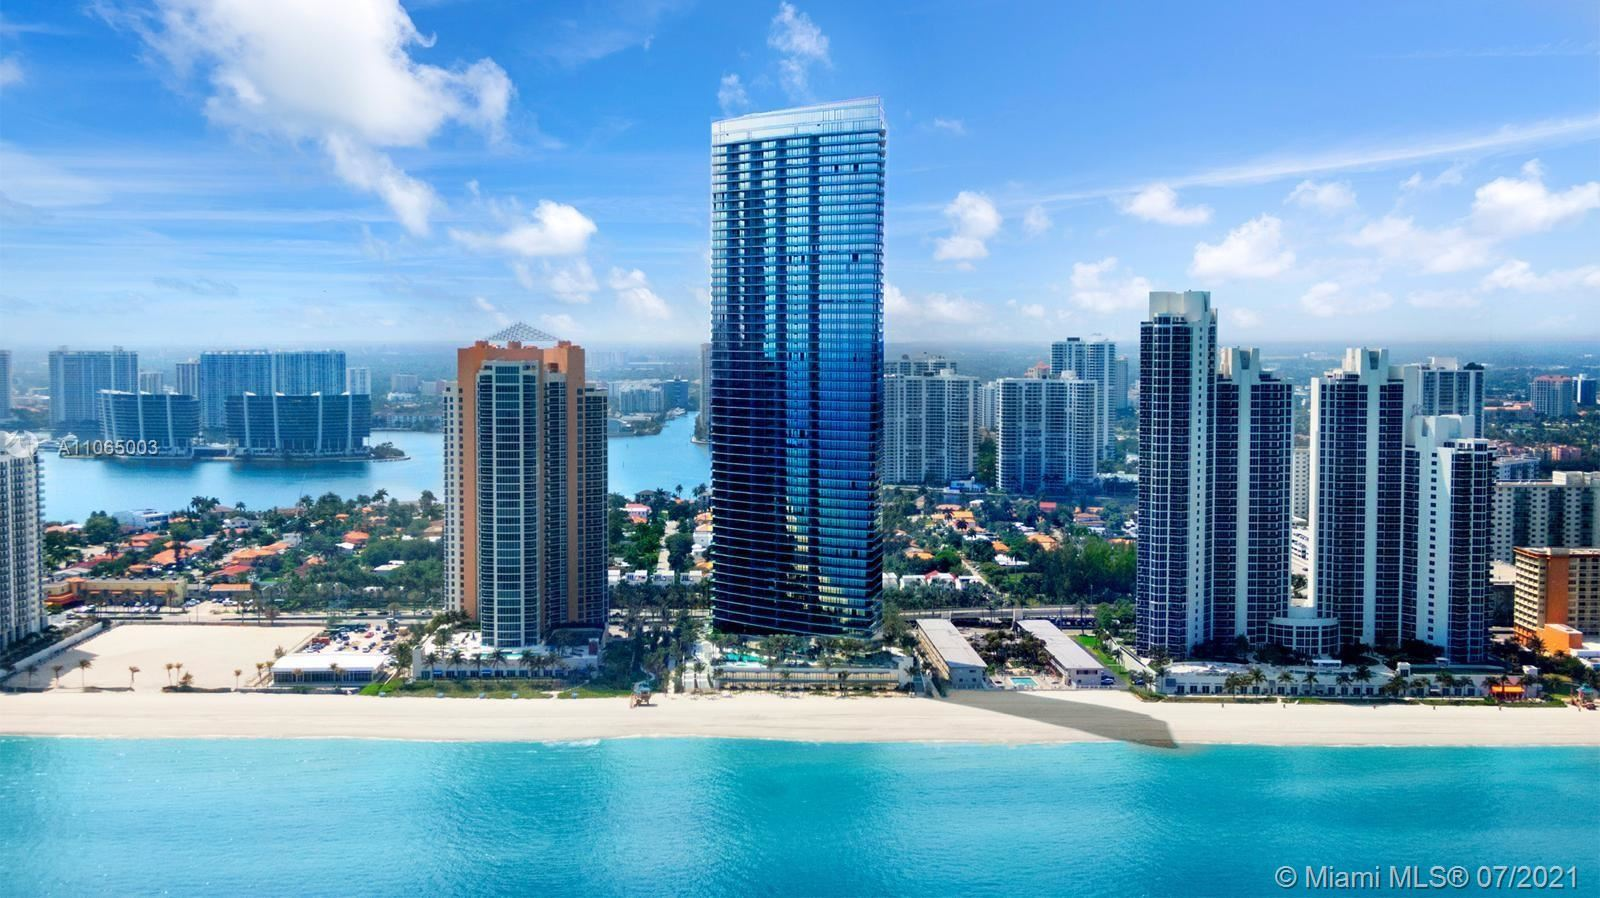 18975 Collins Ave #403, Sunny Isles, FL 33160 - #: A11065003